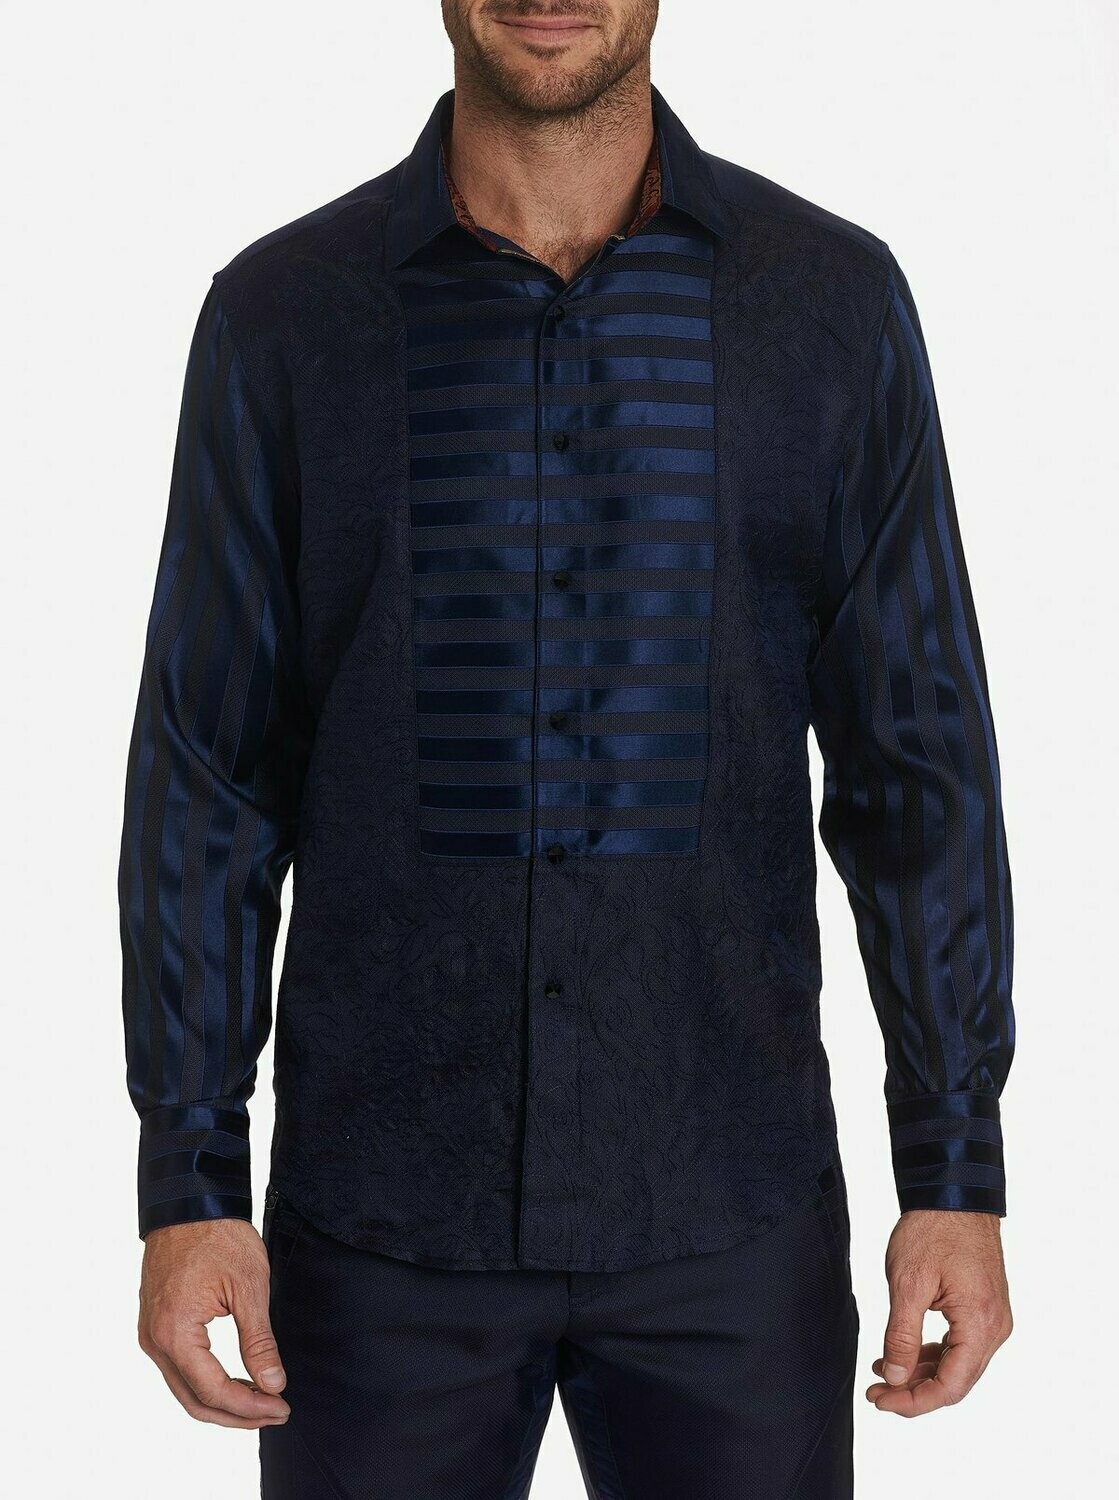 Robert Graham LIMITED EDITION OPERA BLUE SPORT SHIRT